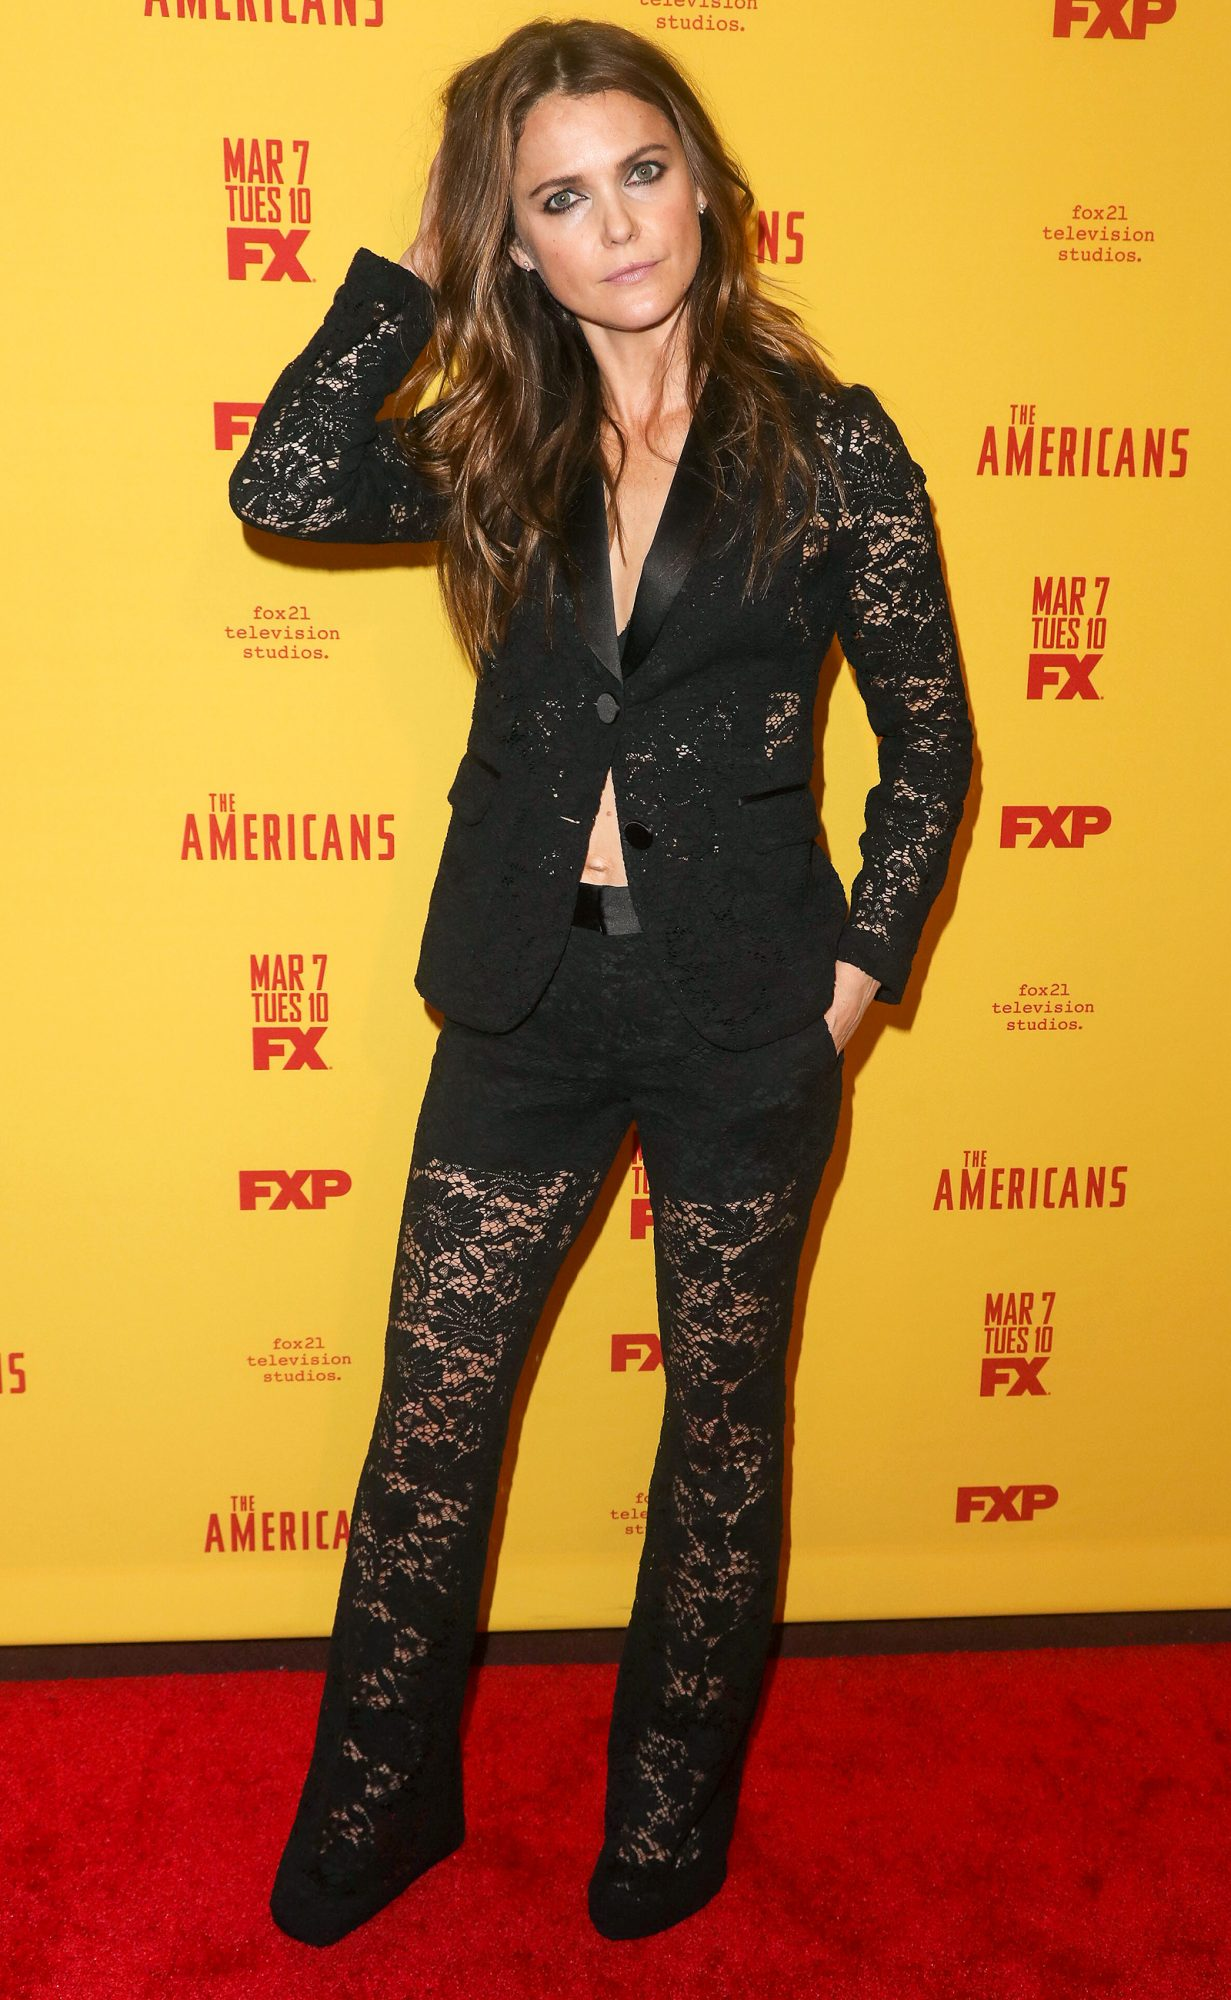 """2/25/17 - New York: Red Carpet Premiere of FX's """"The Americans"""" Season 5"""